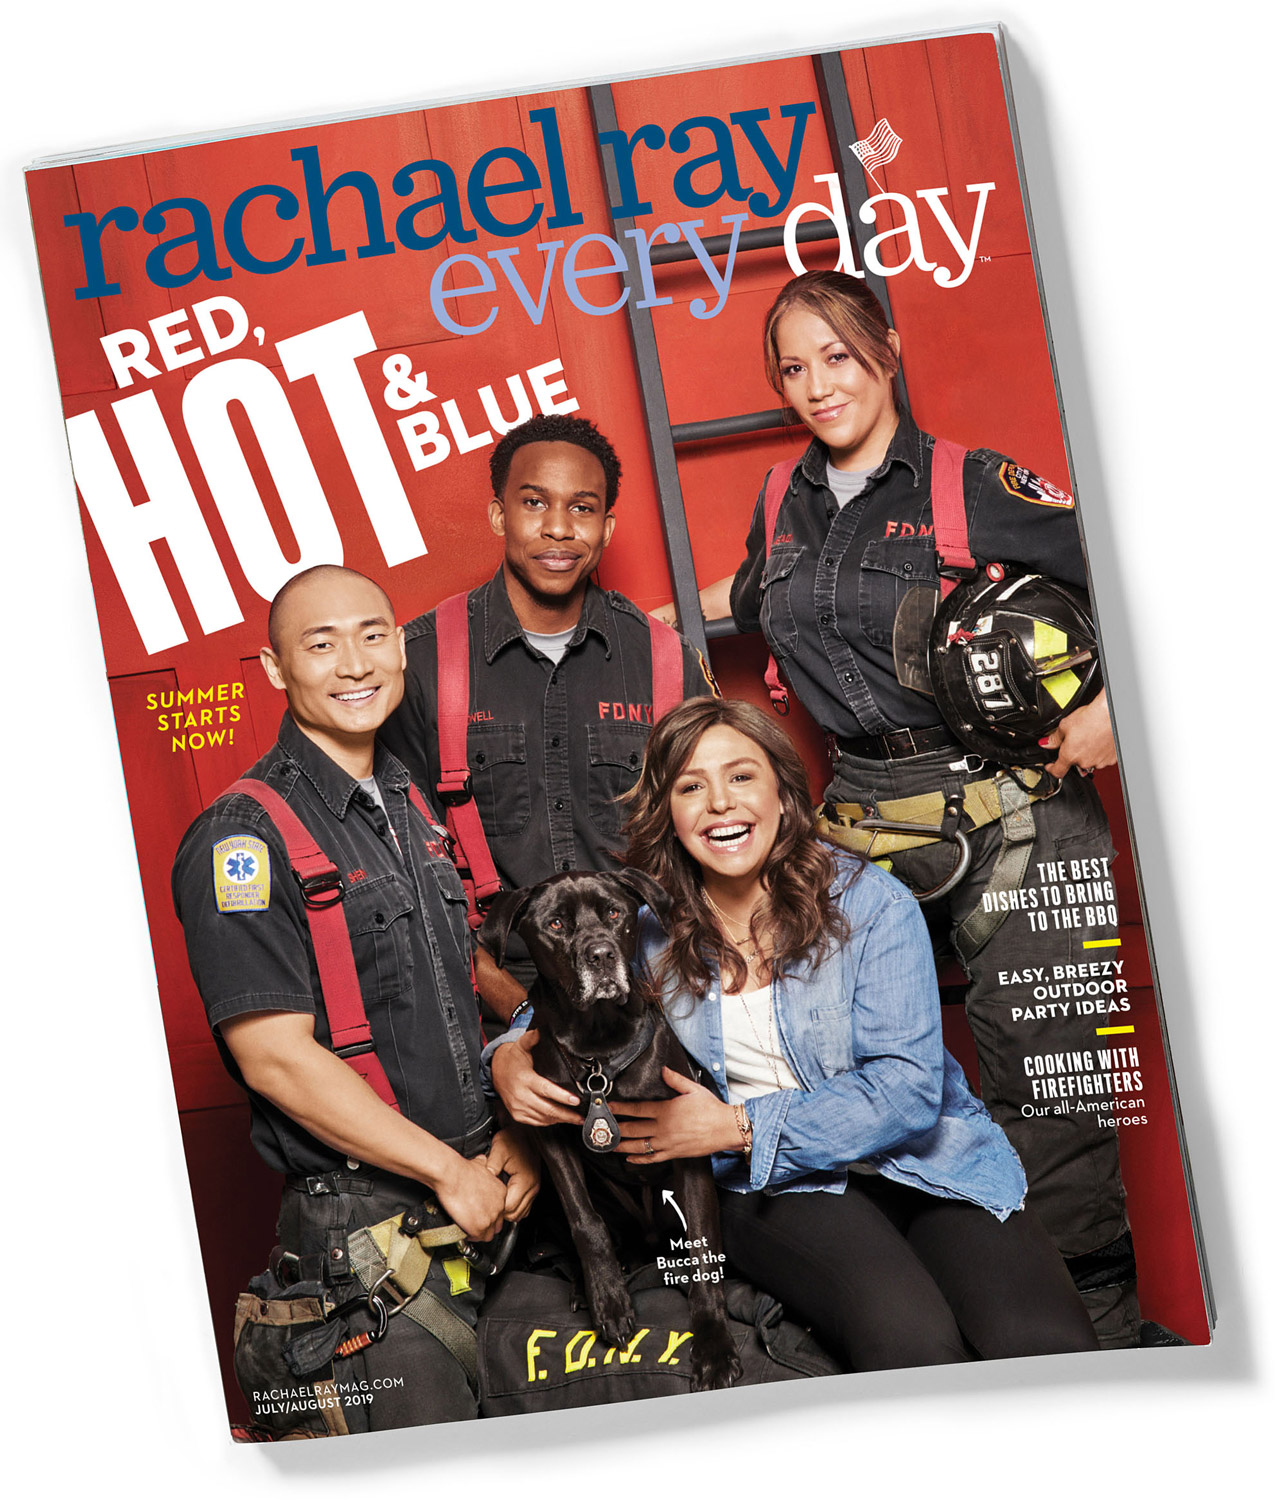 Rachael Ray Every Day Red, Hot & Blue mag cover